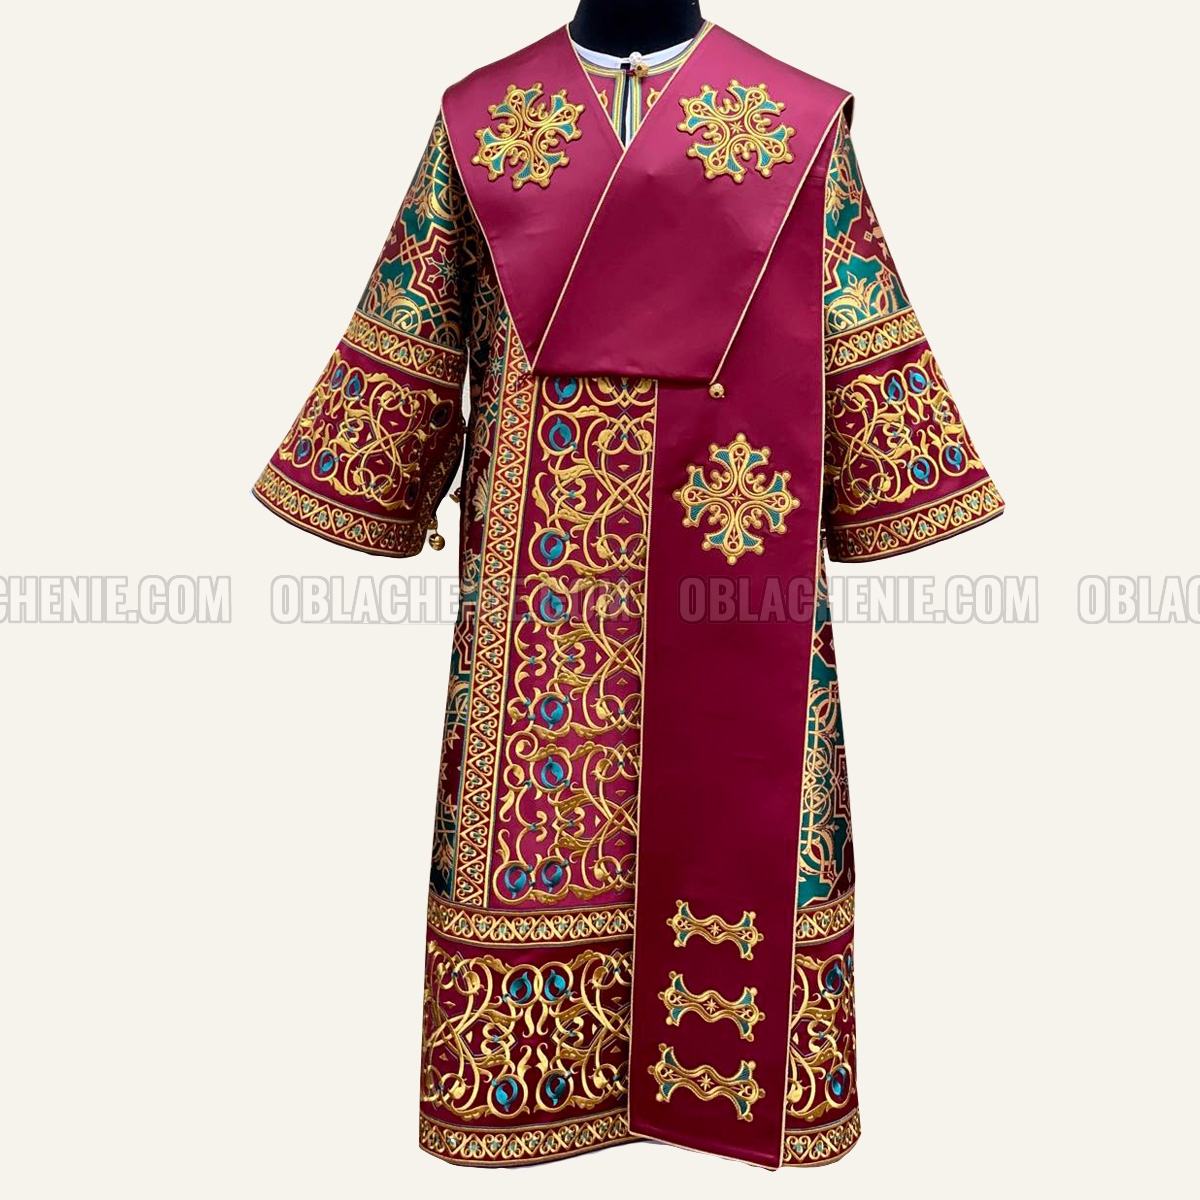 Bishop's vestments 11010